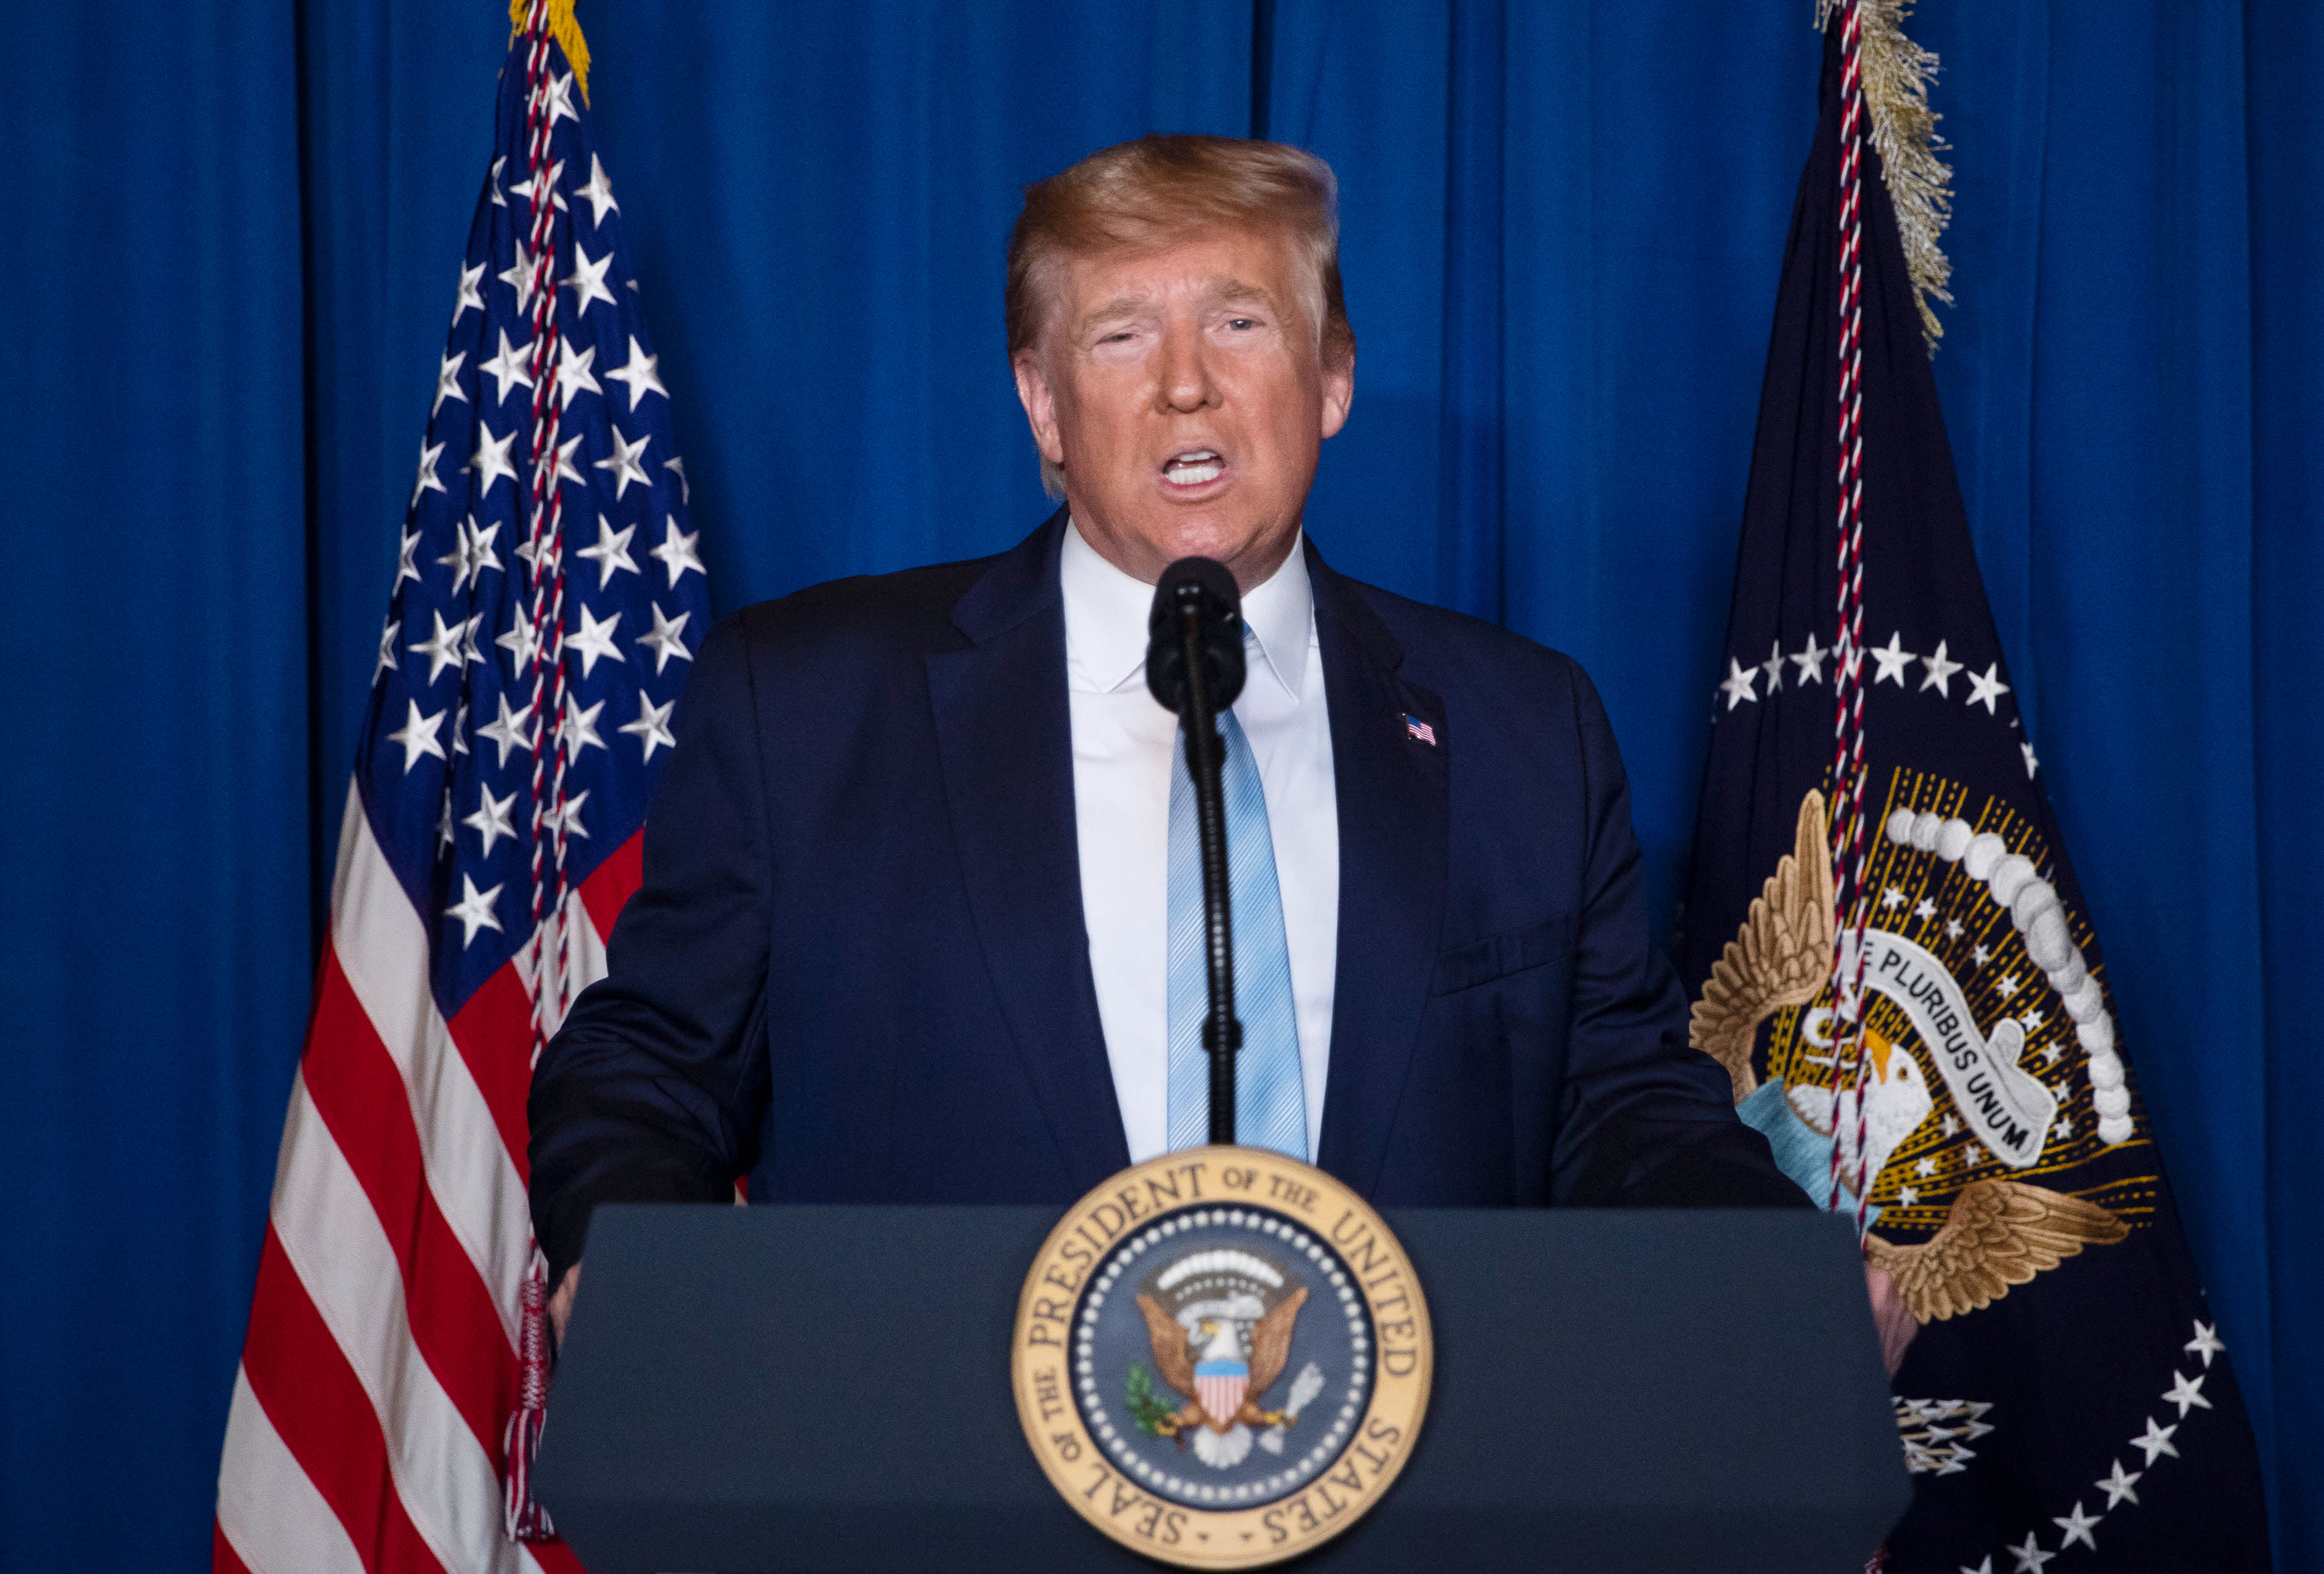 Trump says US does not seek war or regime change in Iran, but is still ready to act if 'necessary'